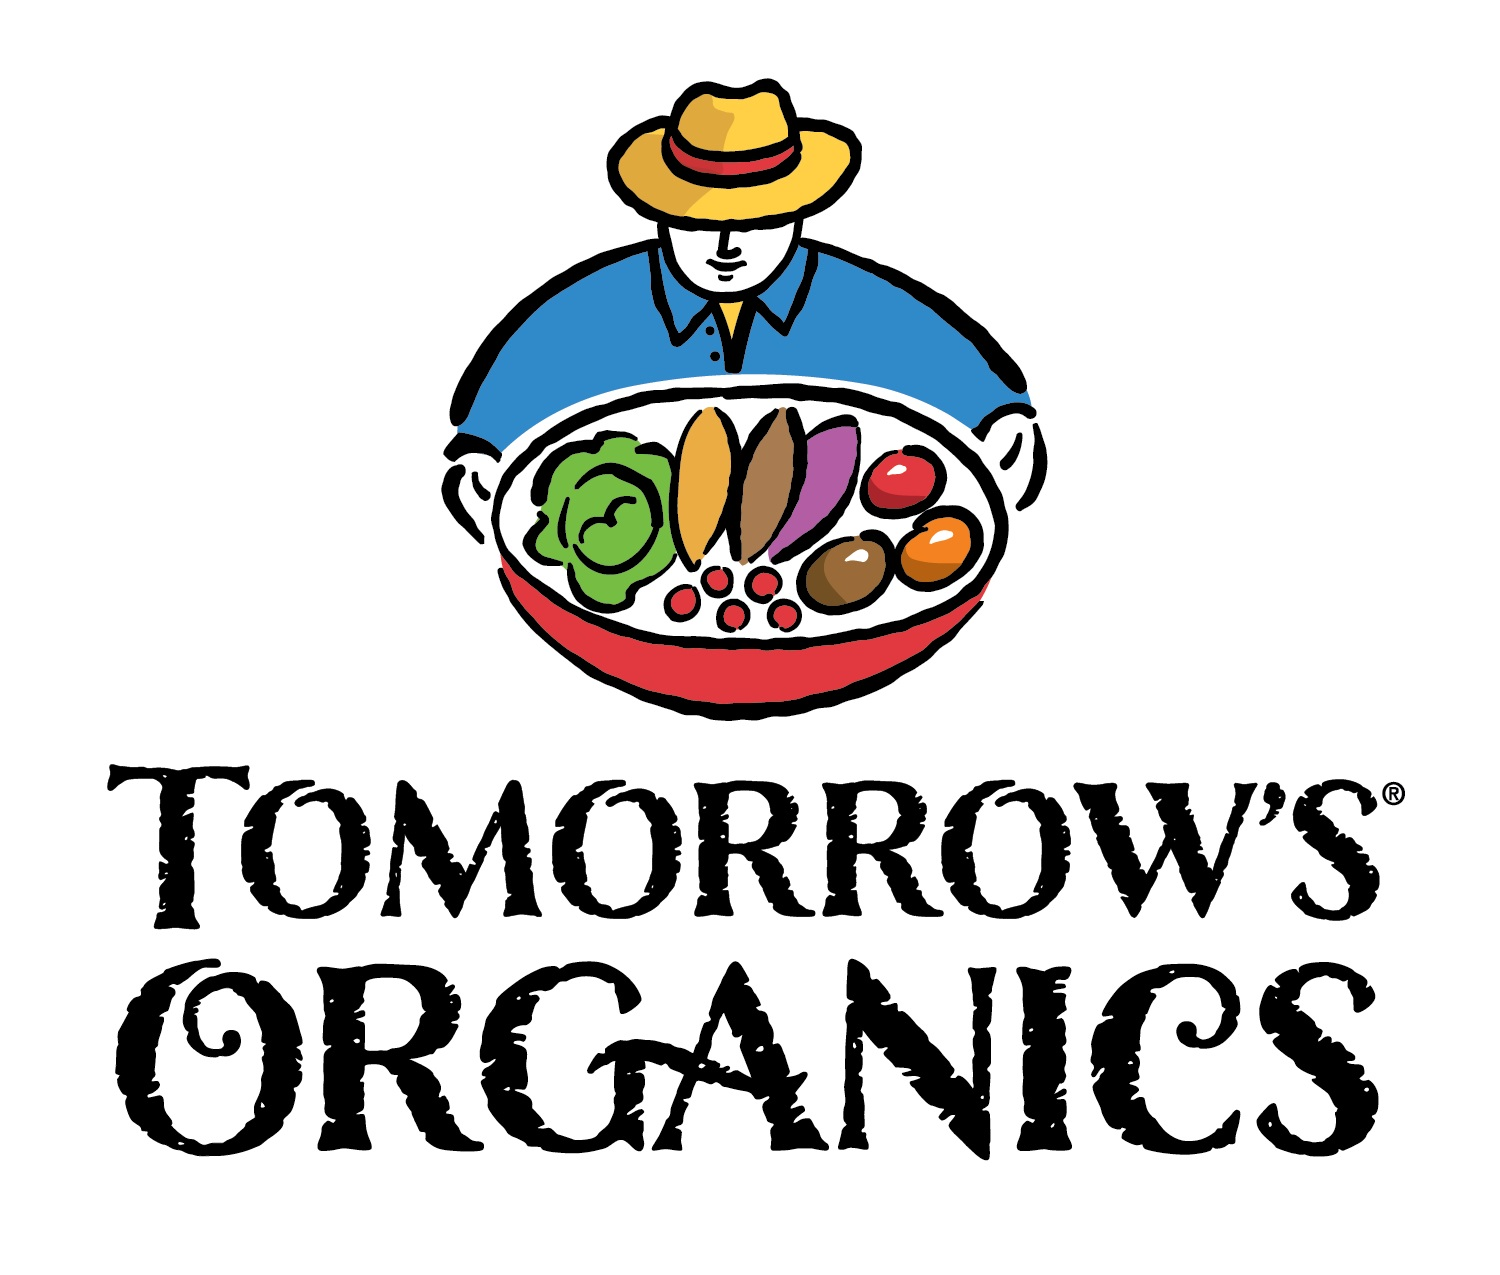 Helping promote organic farming among family growers in Central America is the aim behind a 3-year agreement between Sustainable Harvest International and the Robinson Fresh organics brand, Tomorrow's Organics.